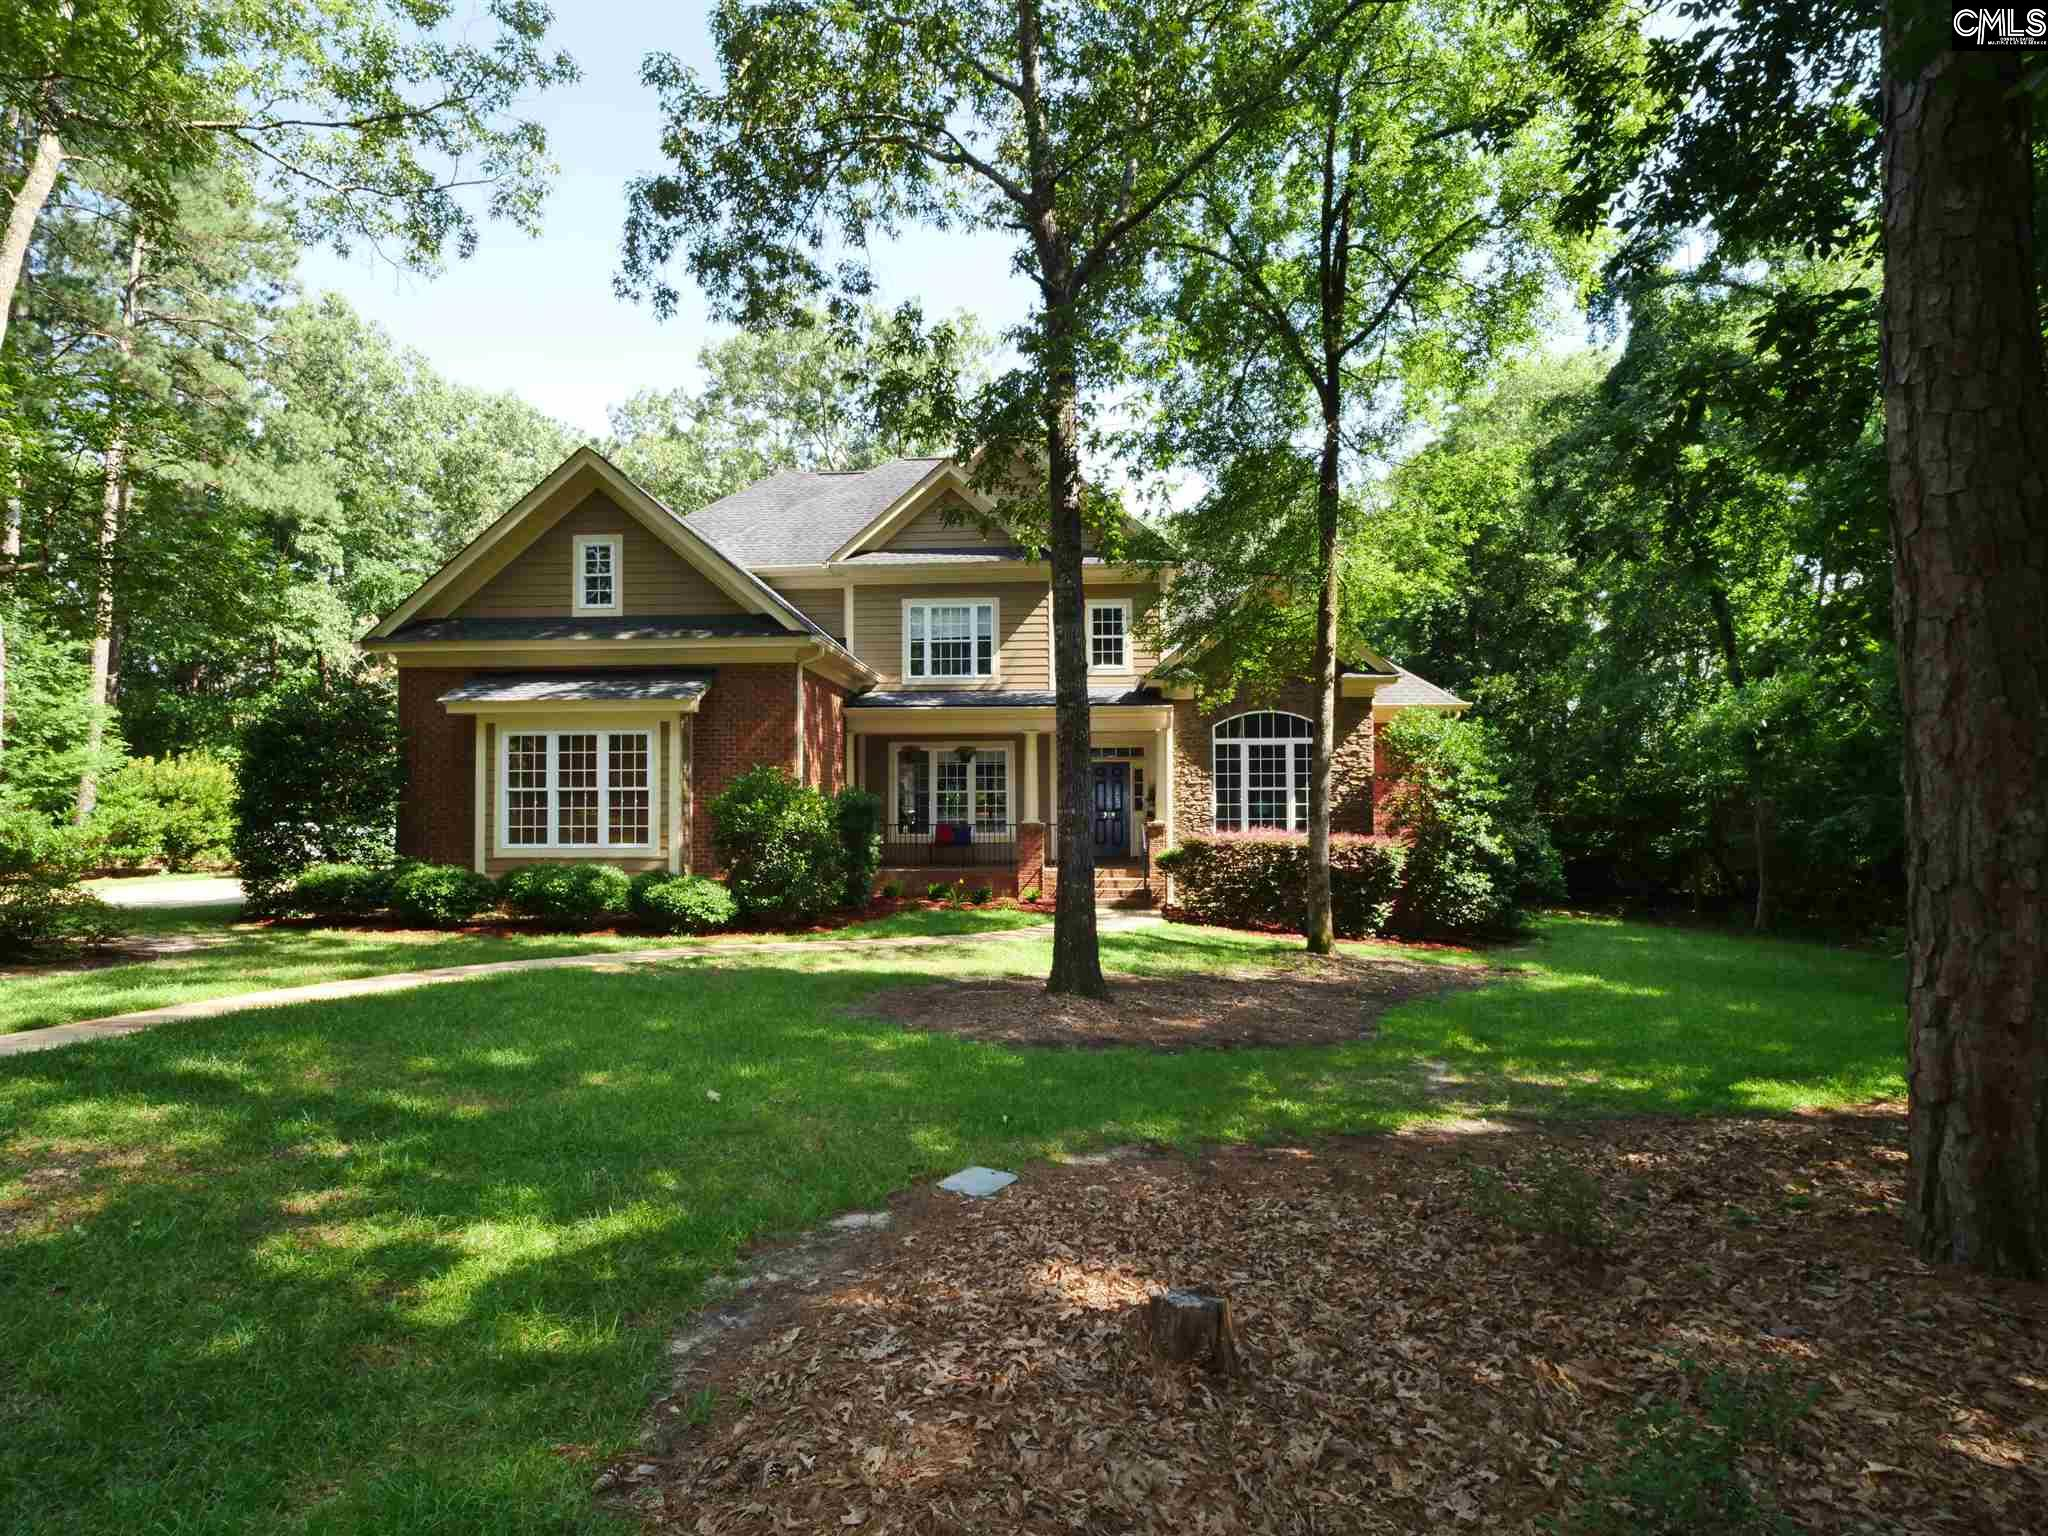 208 Deer Crossing Elgin, SC 29045